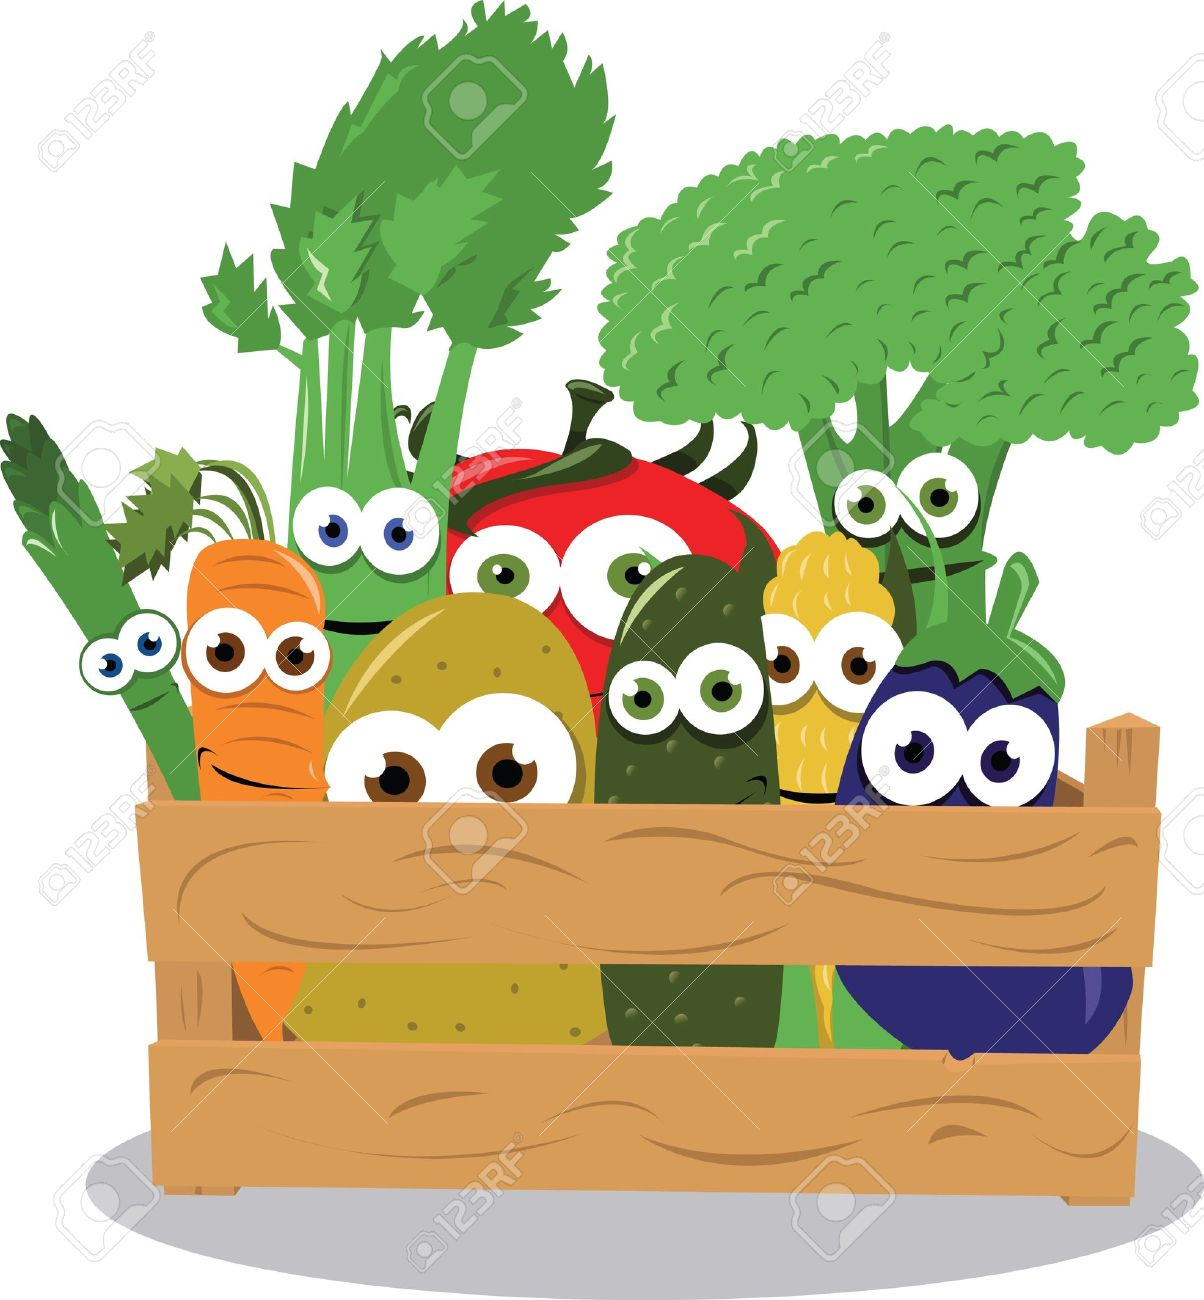 a vector cartoon representing some funny vegetables in a wooden box Stock Vector - 21769447